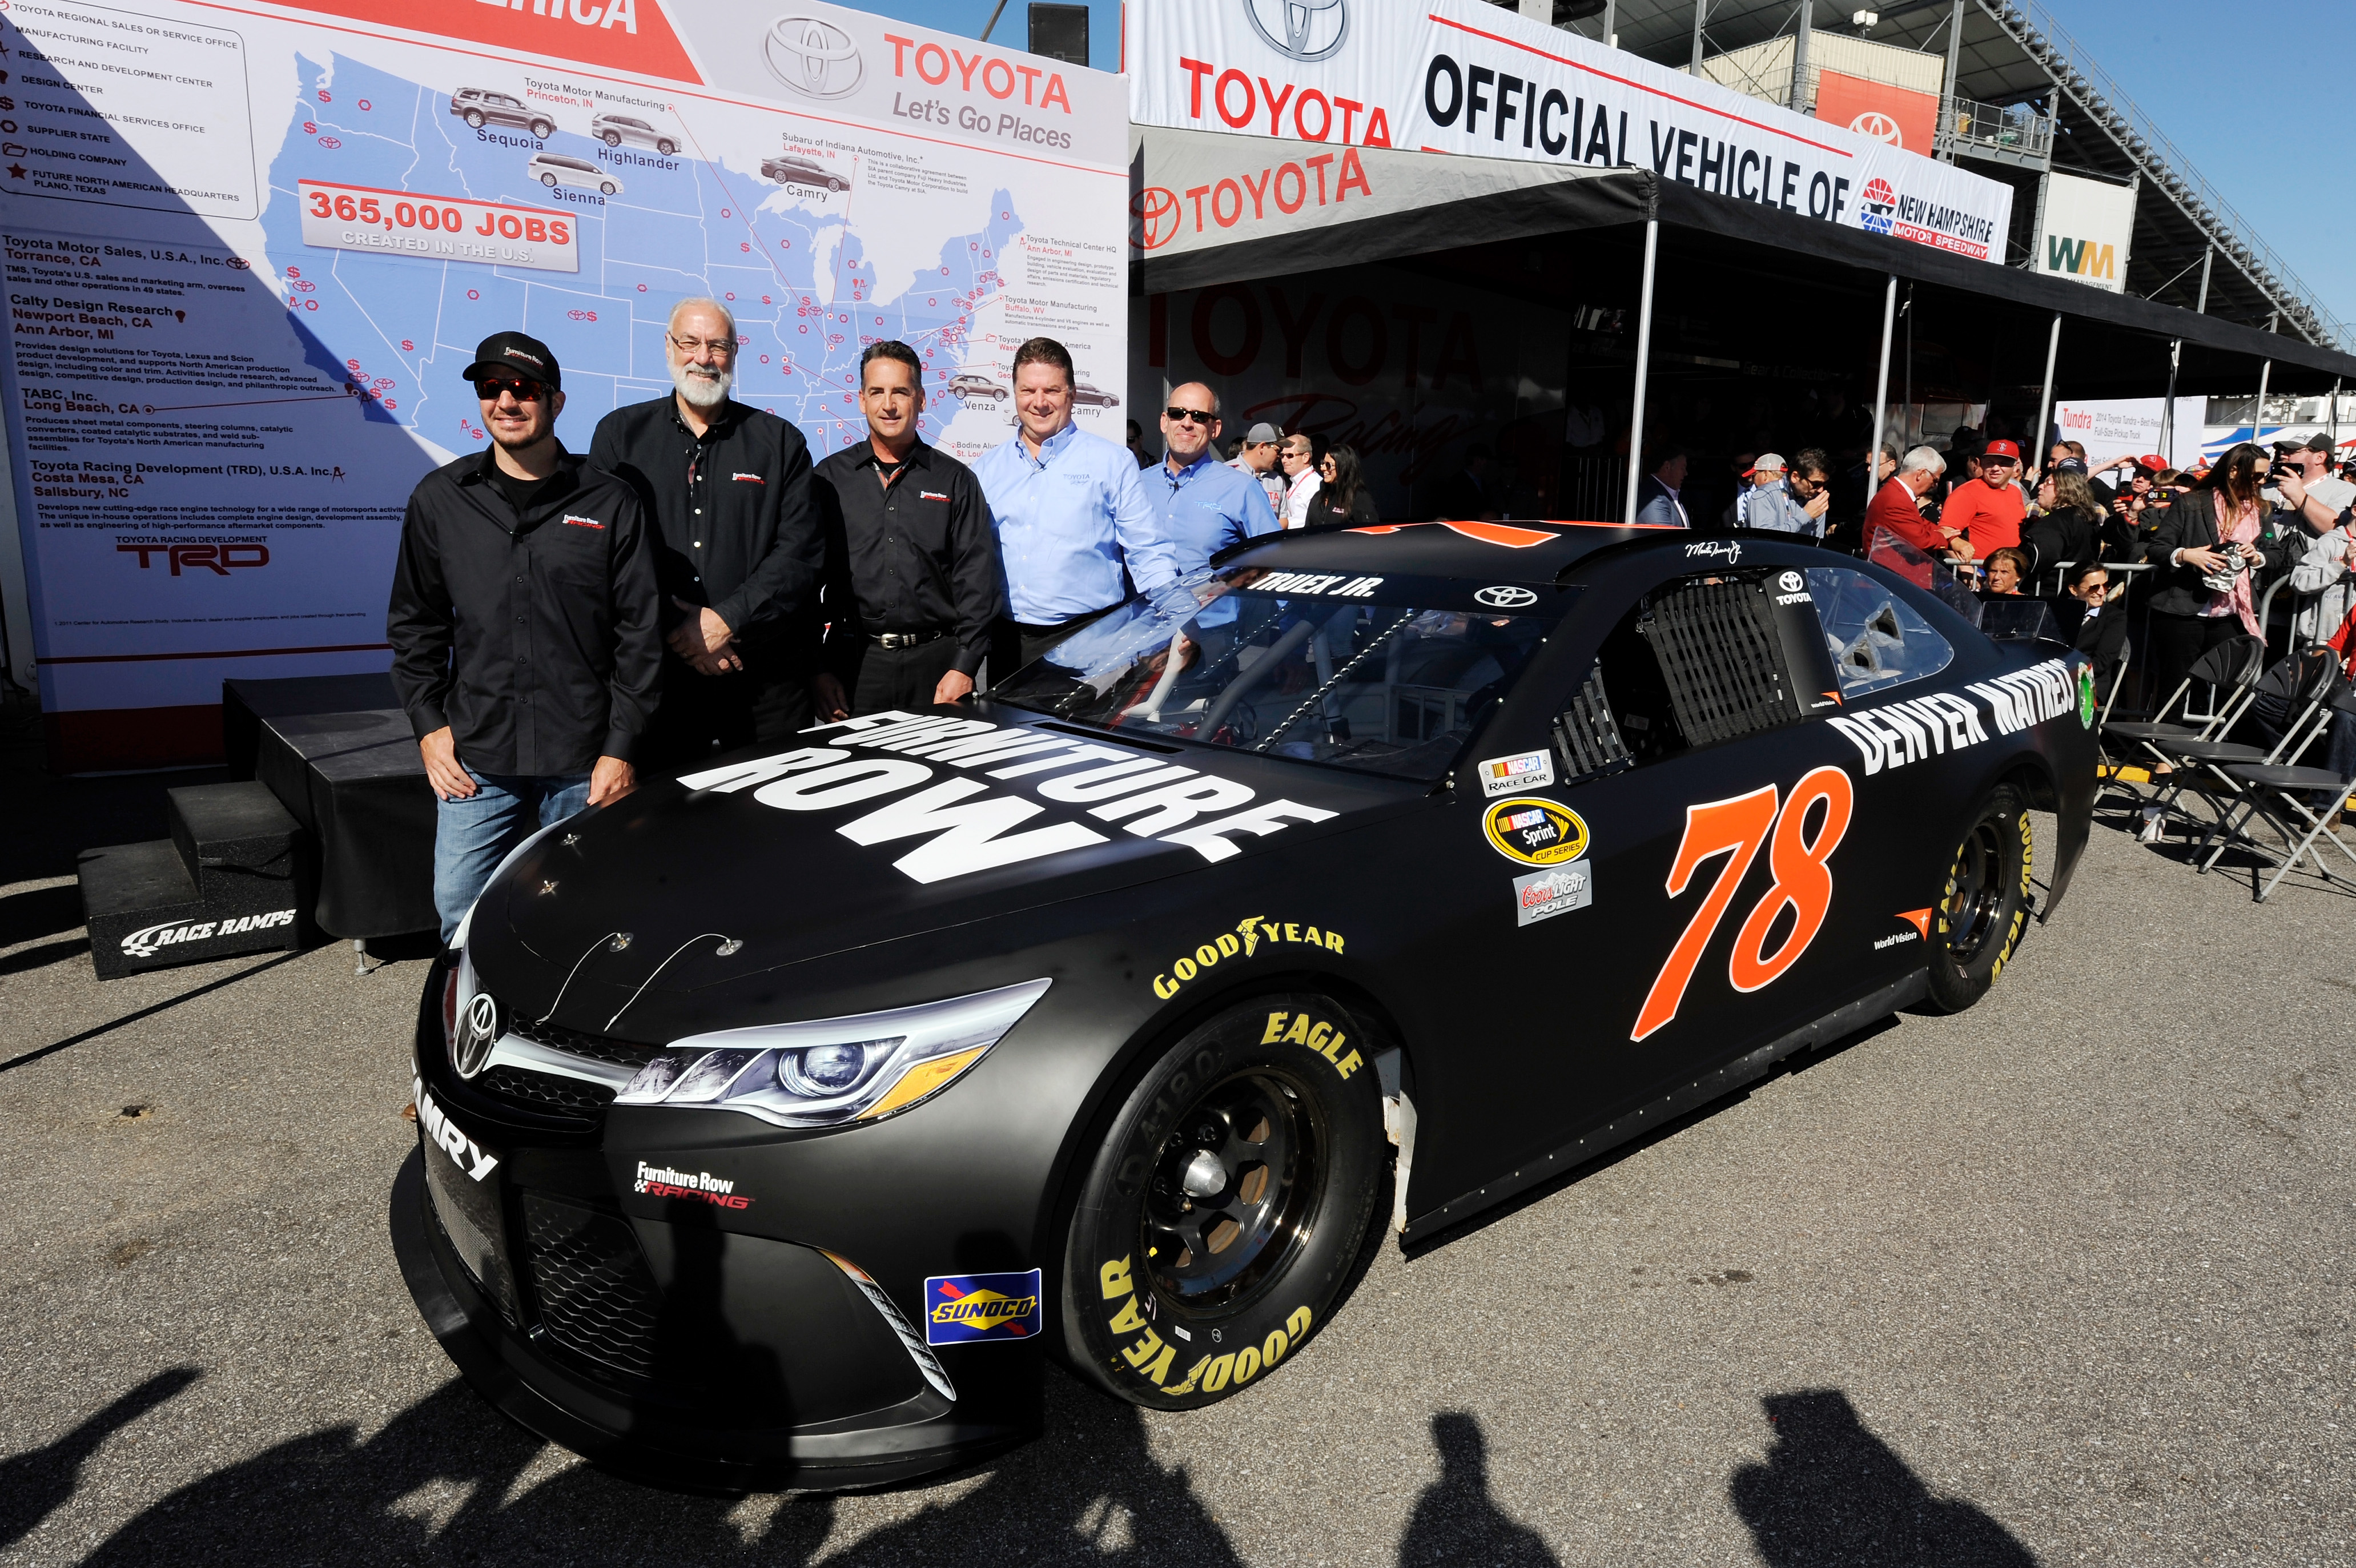 Martin Truex Jr., driver of the #78 Furniture Row/Visser Precision, announces his 2016 partnership with Toyota and technical alliance with Joe Gibbs Racing prior to the NASCAR Sprint Cup Series SYLVANIA 300 at New Hampshire Motor Speedway on September 27, 2015 in Loudon, New Hampshire. (L-R) Martin Truex Jr., driver of the #78 Furniture Row/Visser Precision, Barney Visser, Co-Owner of Furniture Row and Furniture Row Racing, Joe Garone, General Manager of Furniture Row Racing, Edward Laukes, Vice President of Marketing Communications and Motorsports for Toyota USA, and David Wilson, President and General Manager of Toyota Racing Development USA, pose during media availability. (Photo by Jared C. Tilton/Getty Images)